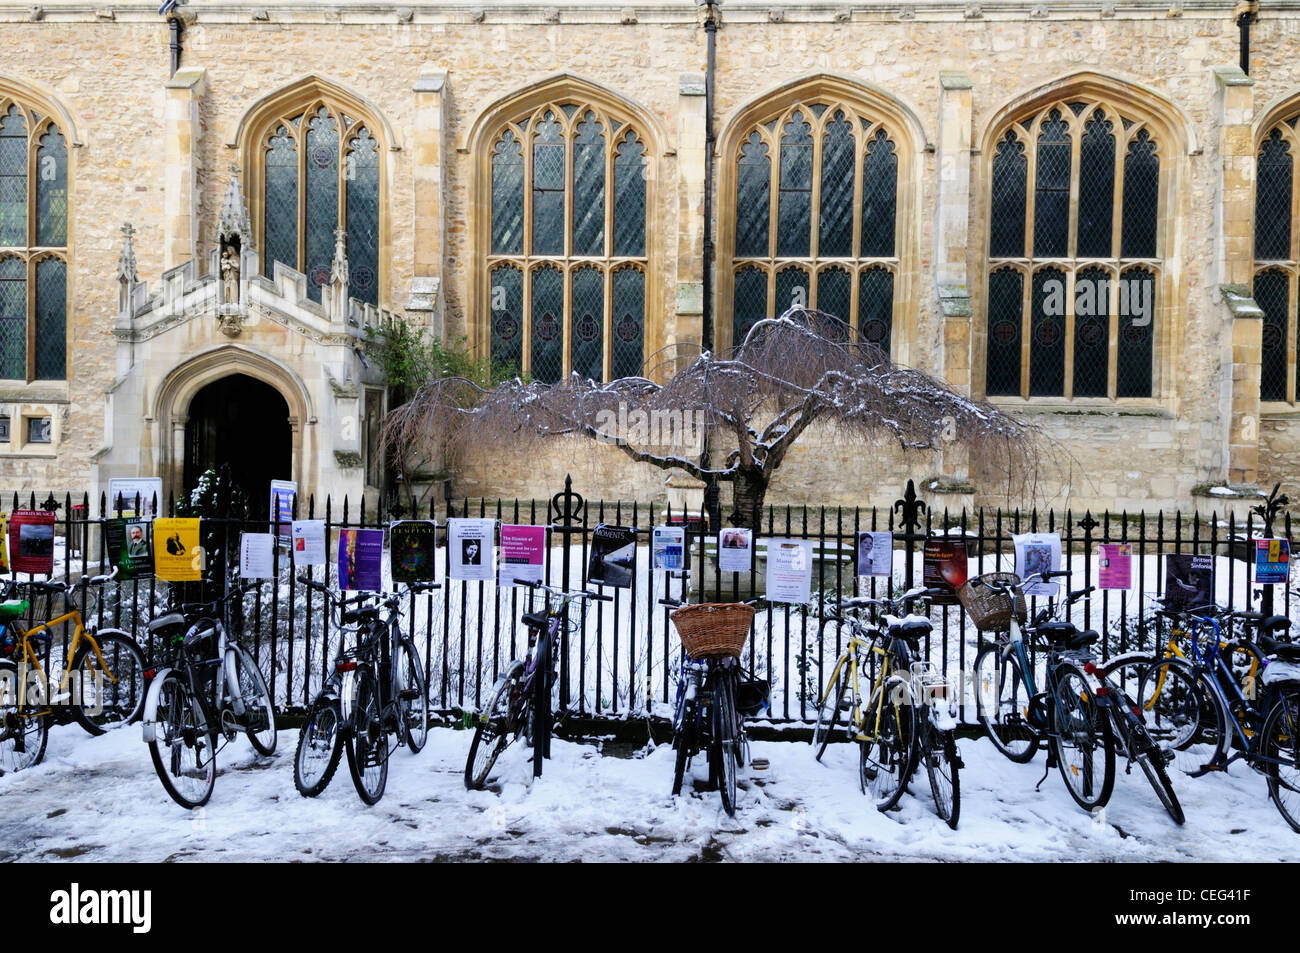 Bicycles outside Great St Mary's Church, Cambridge, England, UK - Stock Image